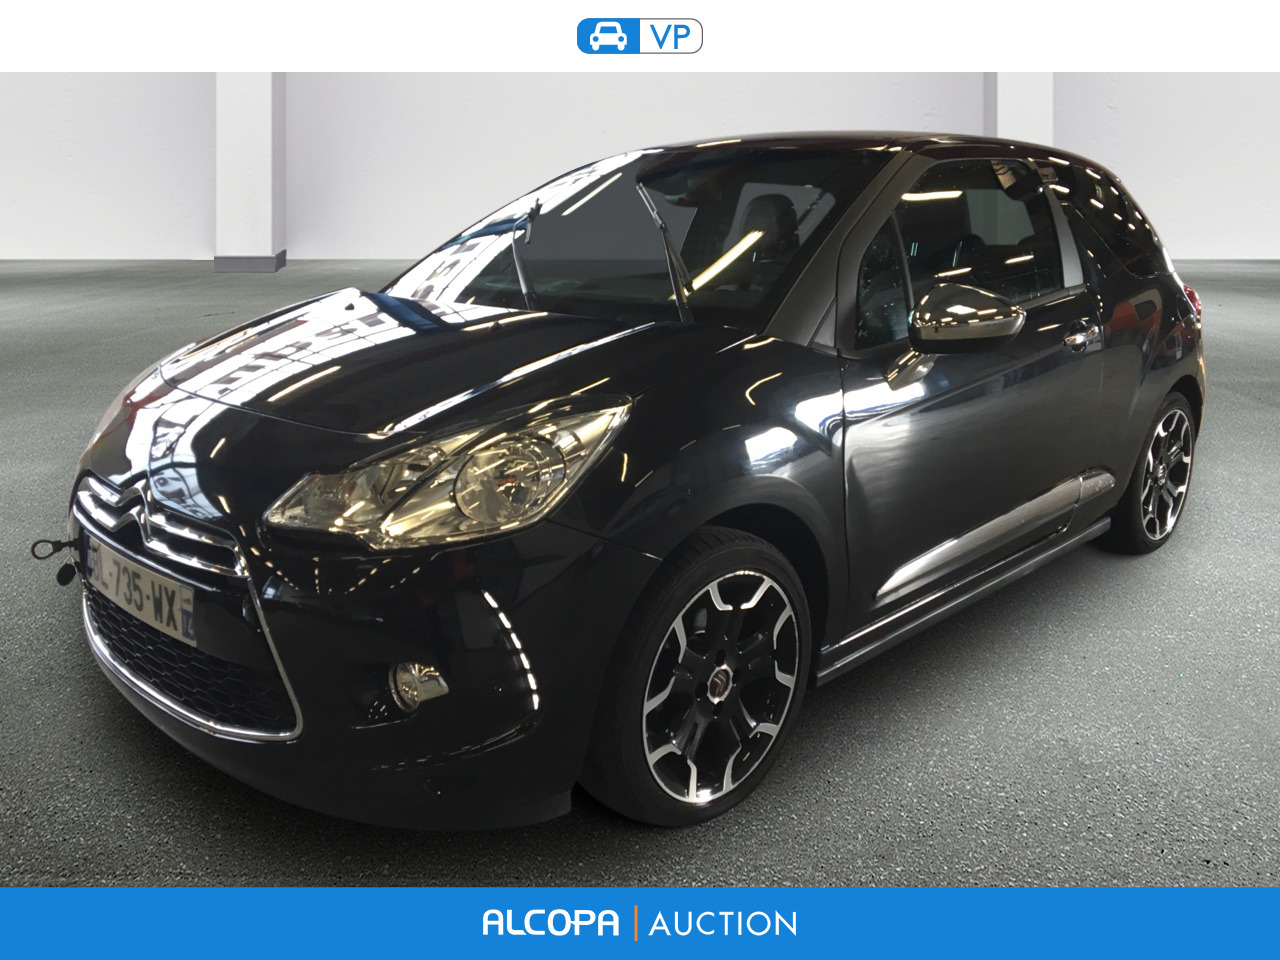 citroen ds3 ds3 thp 155 sport chic alcopa auction. Black Bedroom Furniture Sets. Home Design Ideas